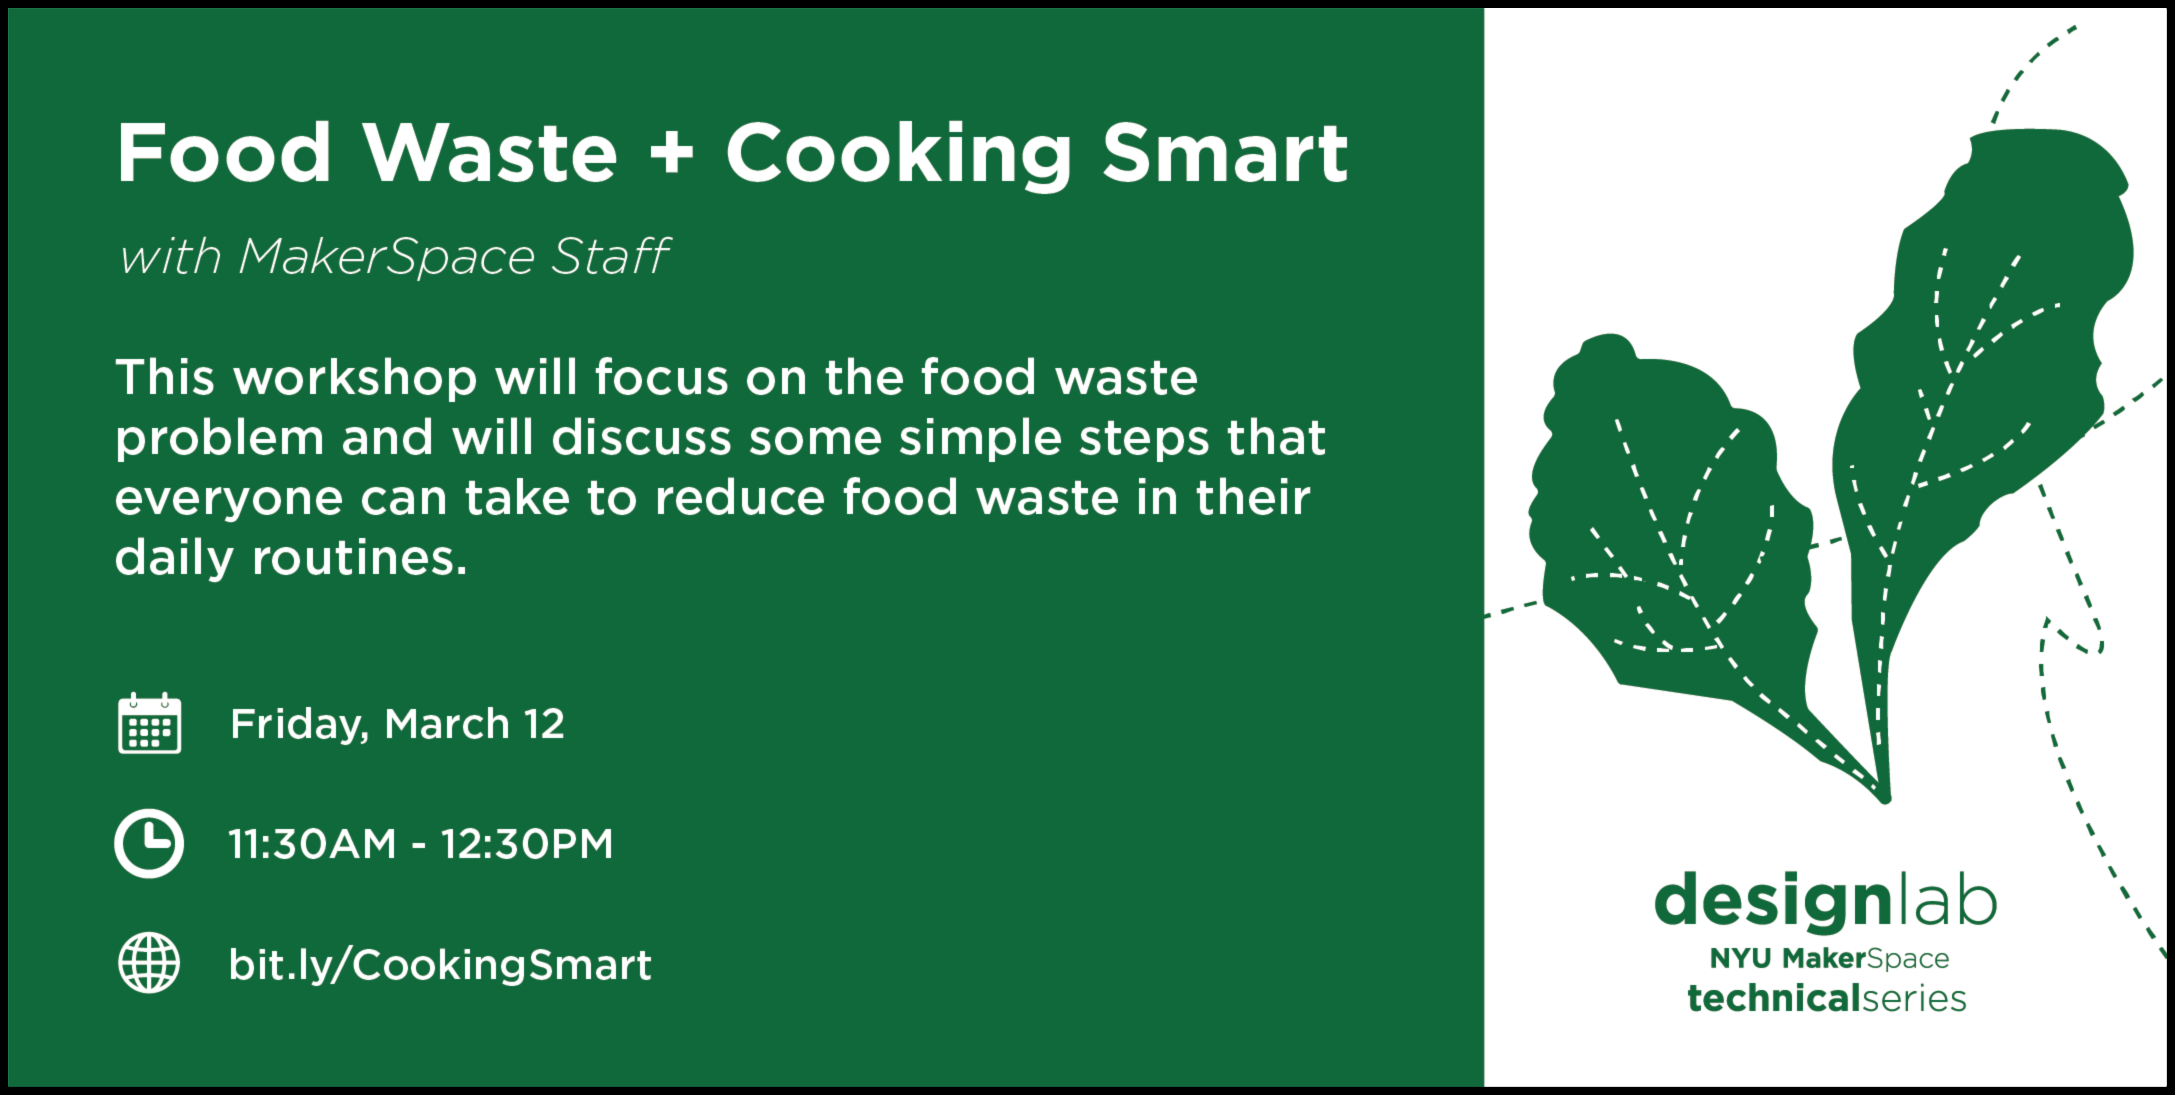 Food Waste and Cooking Smart Flyer